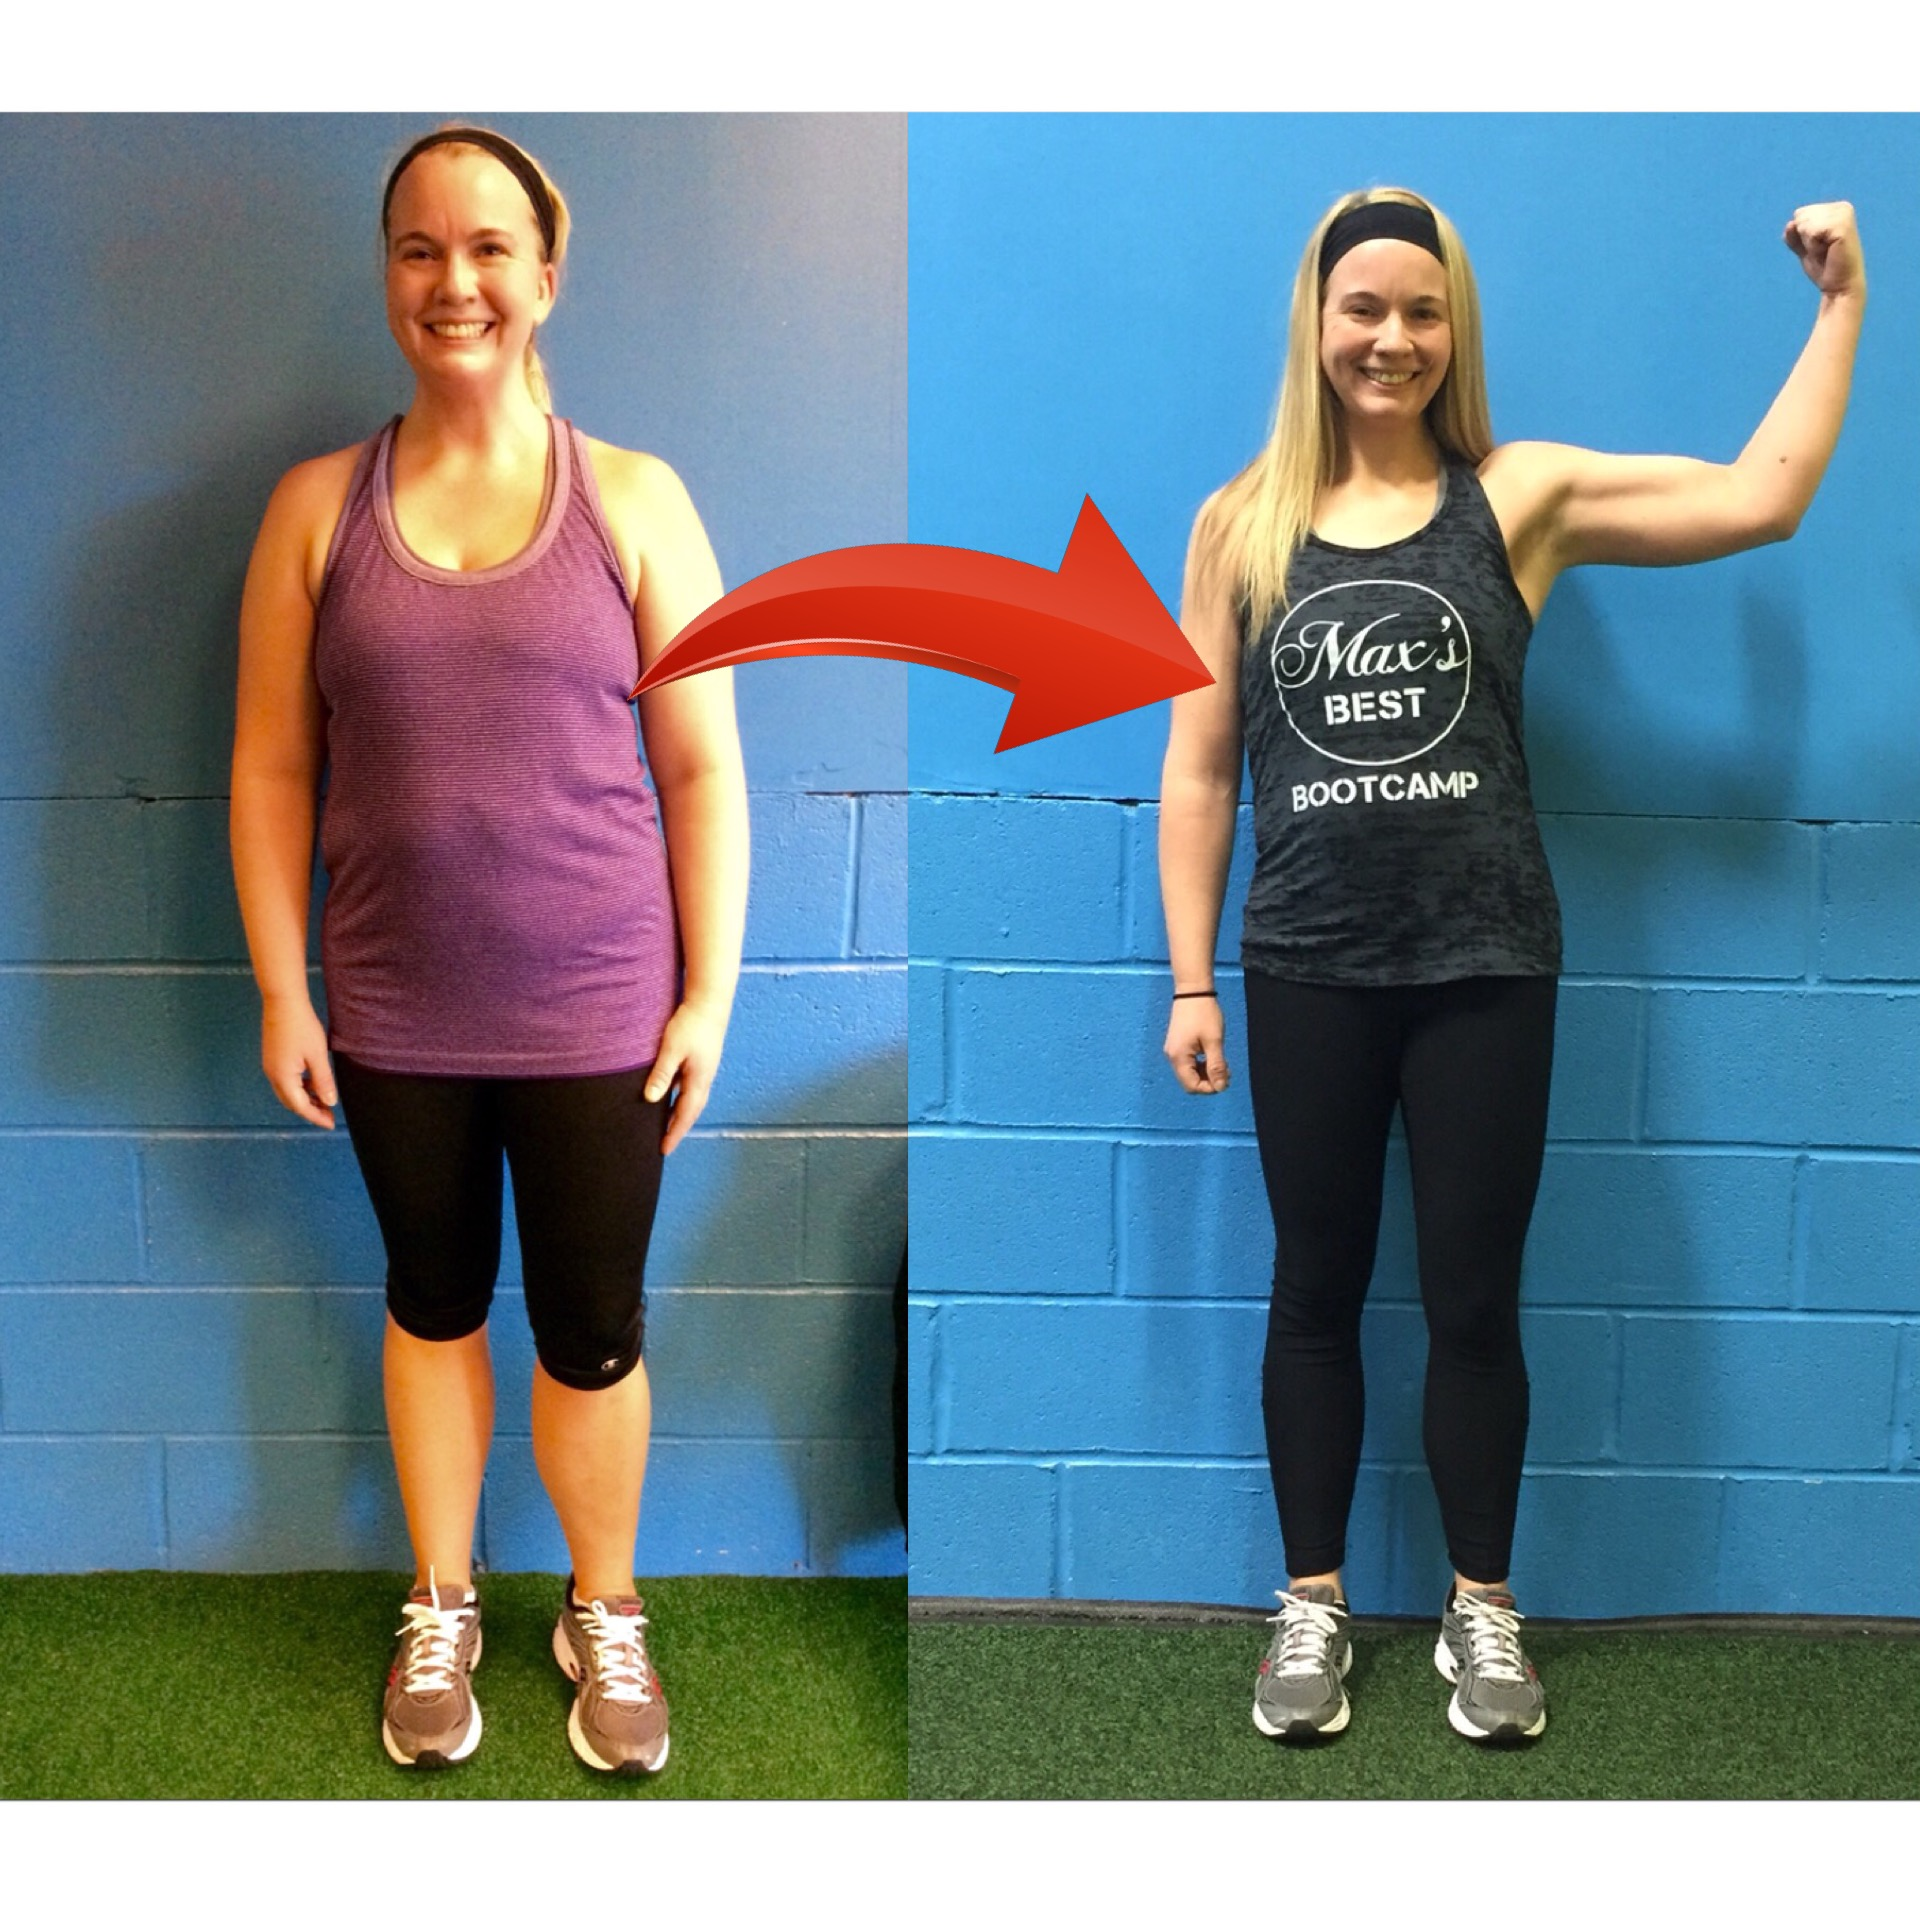 Michelle-weight-loss-results-bootcamp-danbury.JPG